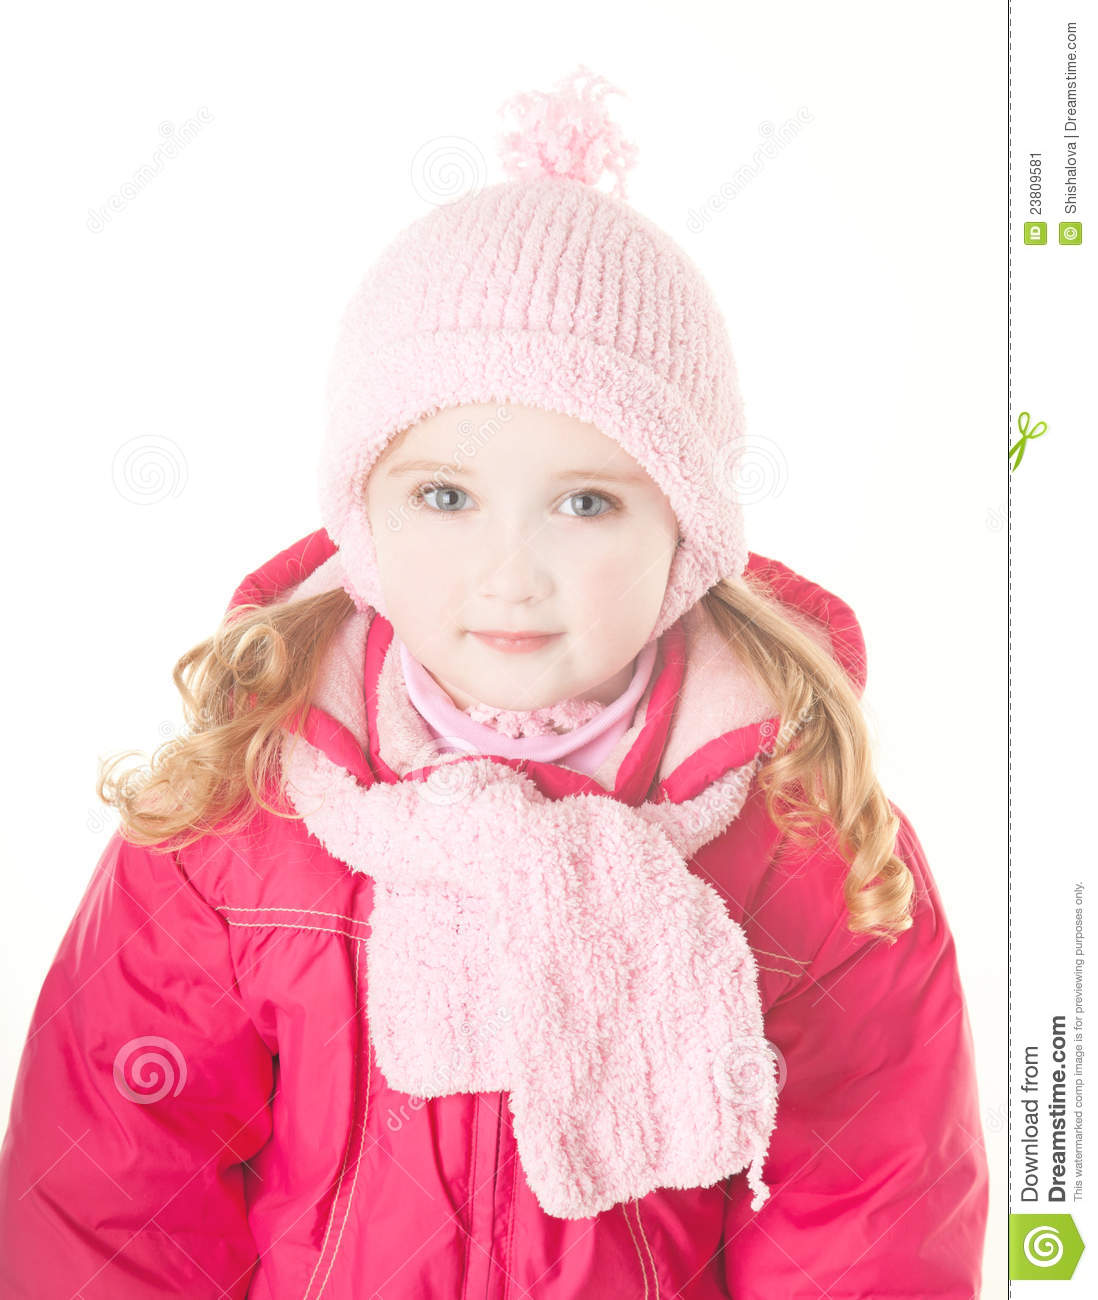 From cozy to elegant, Pink Princess offers a unique line of girl's capes and jackets. Shop here for weddings, first communions, and special occasions.